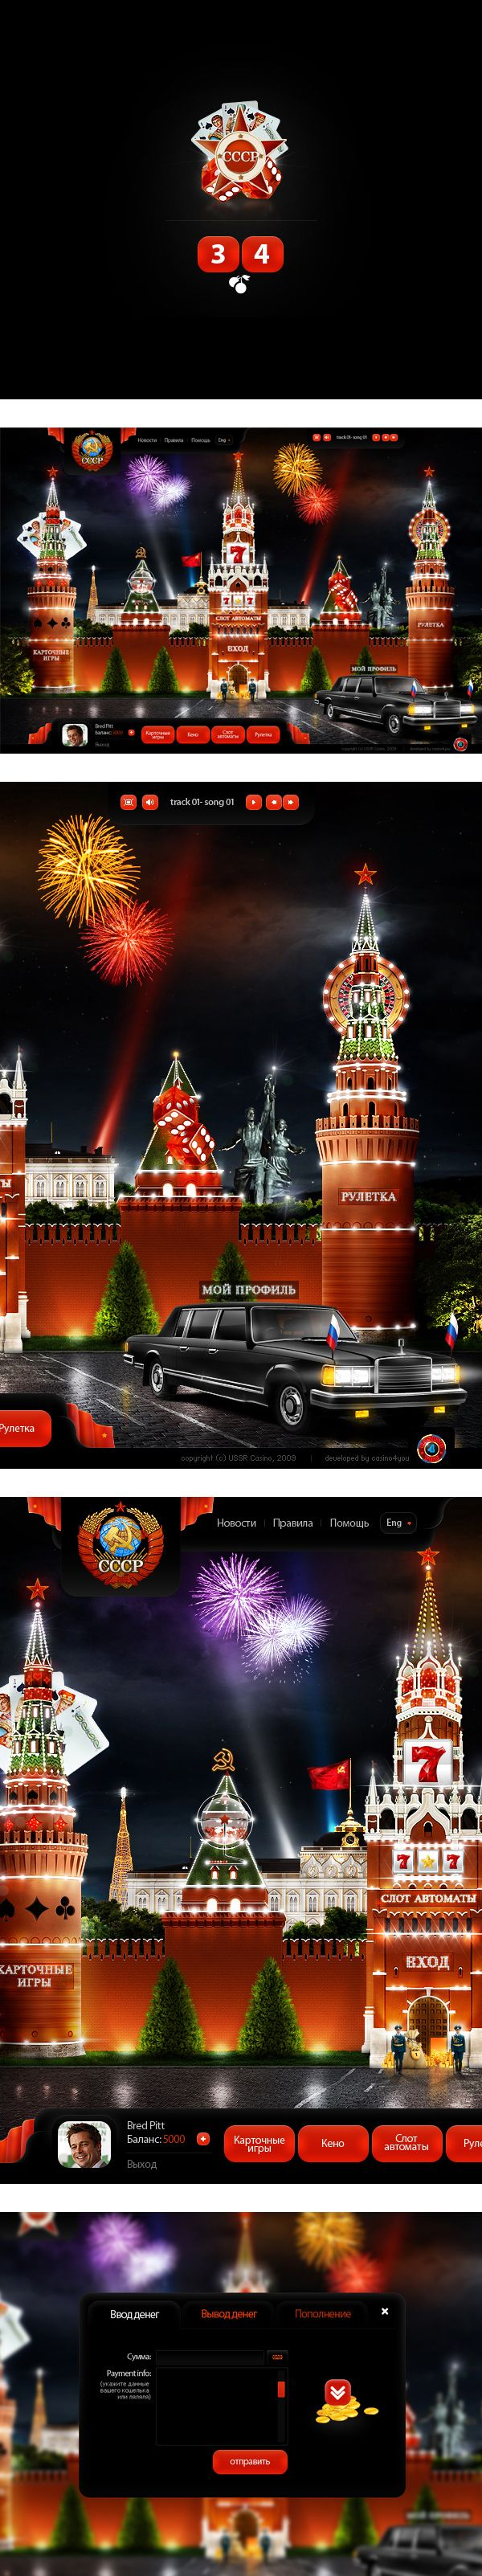 Casino Russia by Oleg Kostyuk, via Behance